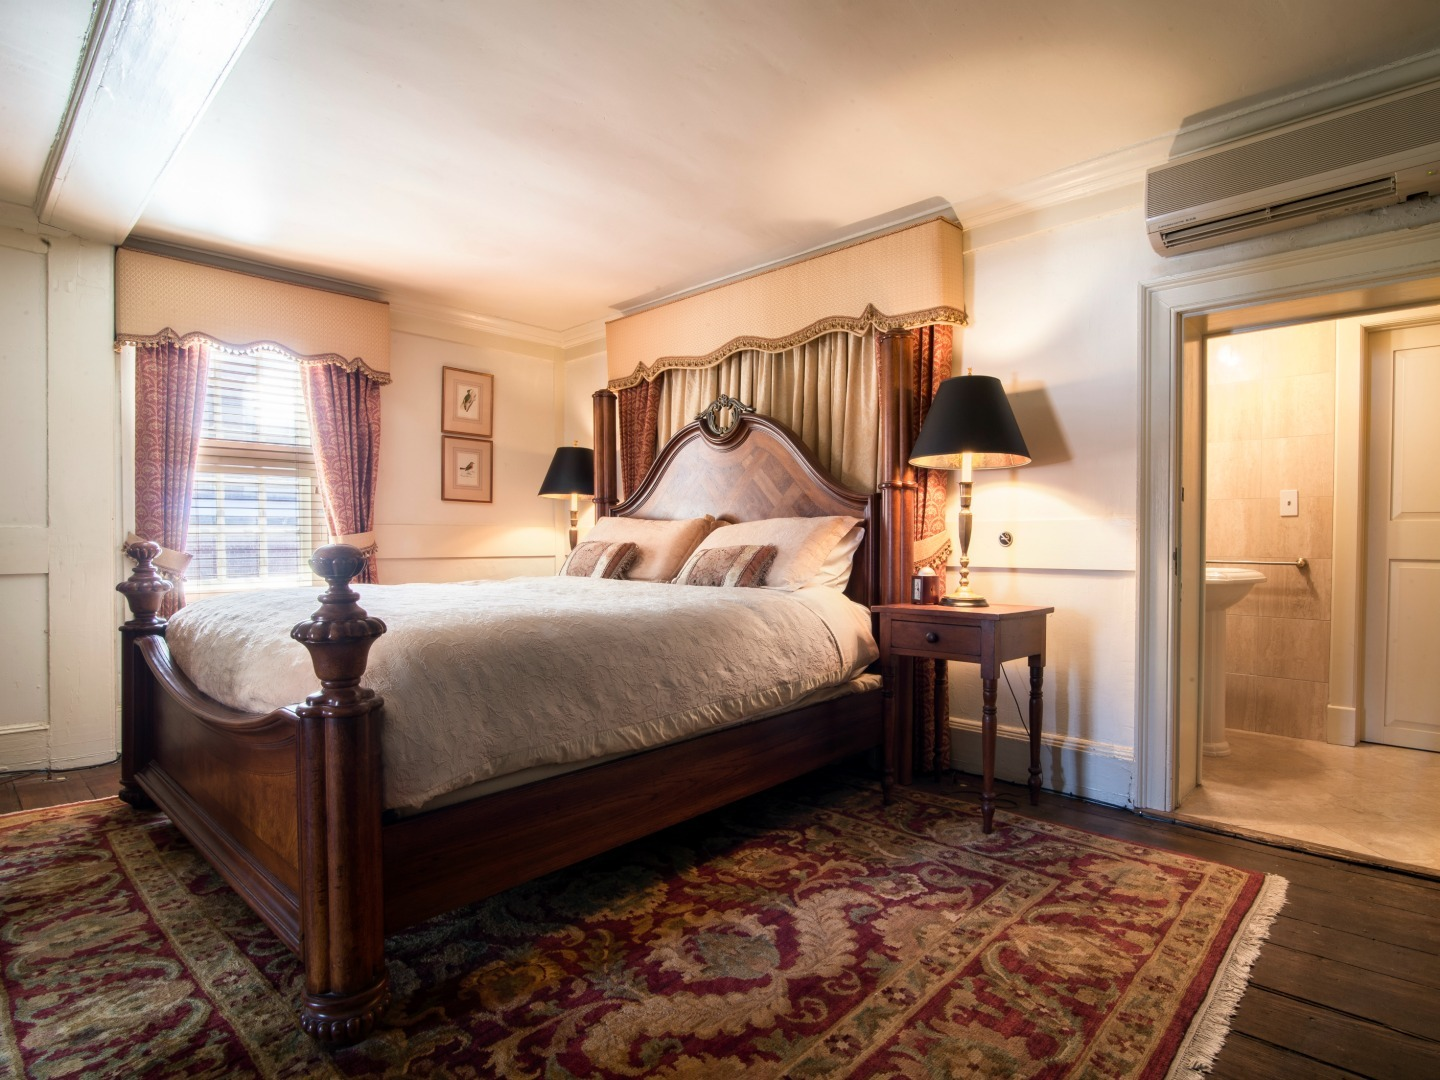 A bedroom with a large bed in a room at Reynolds Tavern.